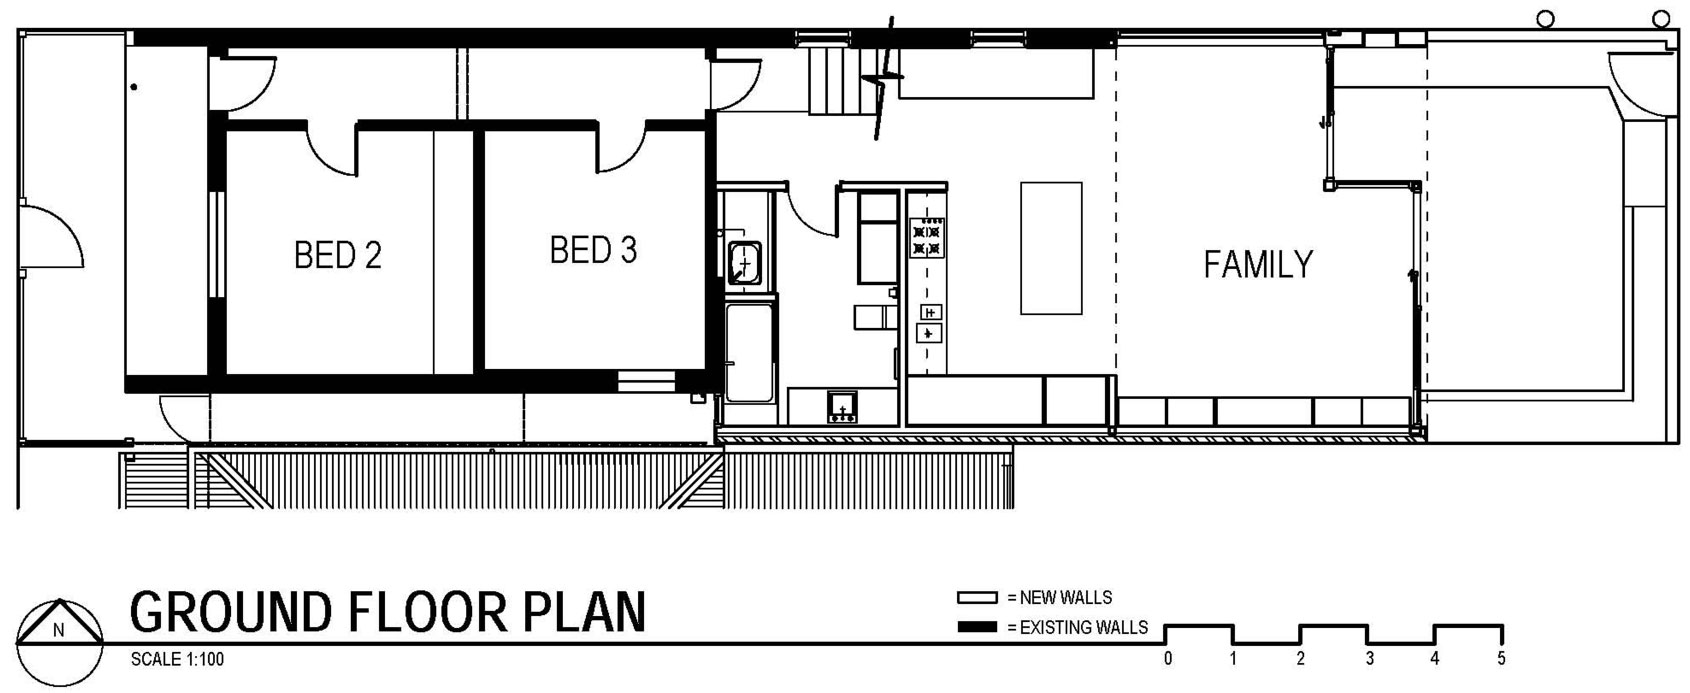 Ground Floor Plan, Modern Renovation in Fitzroy North, Australia